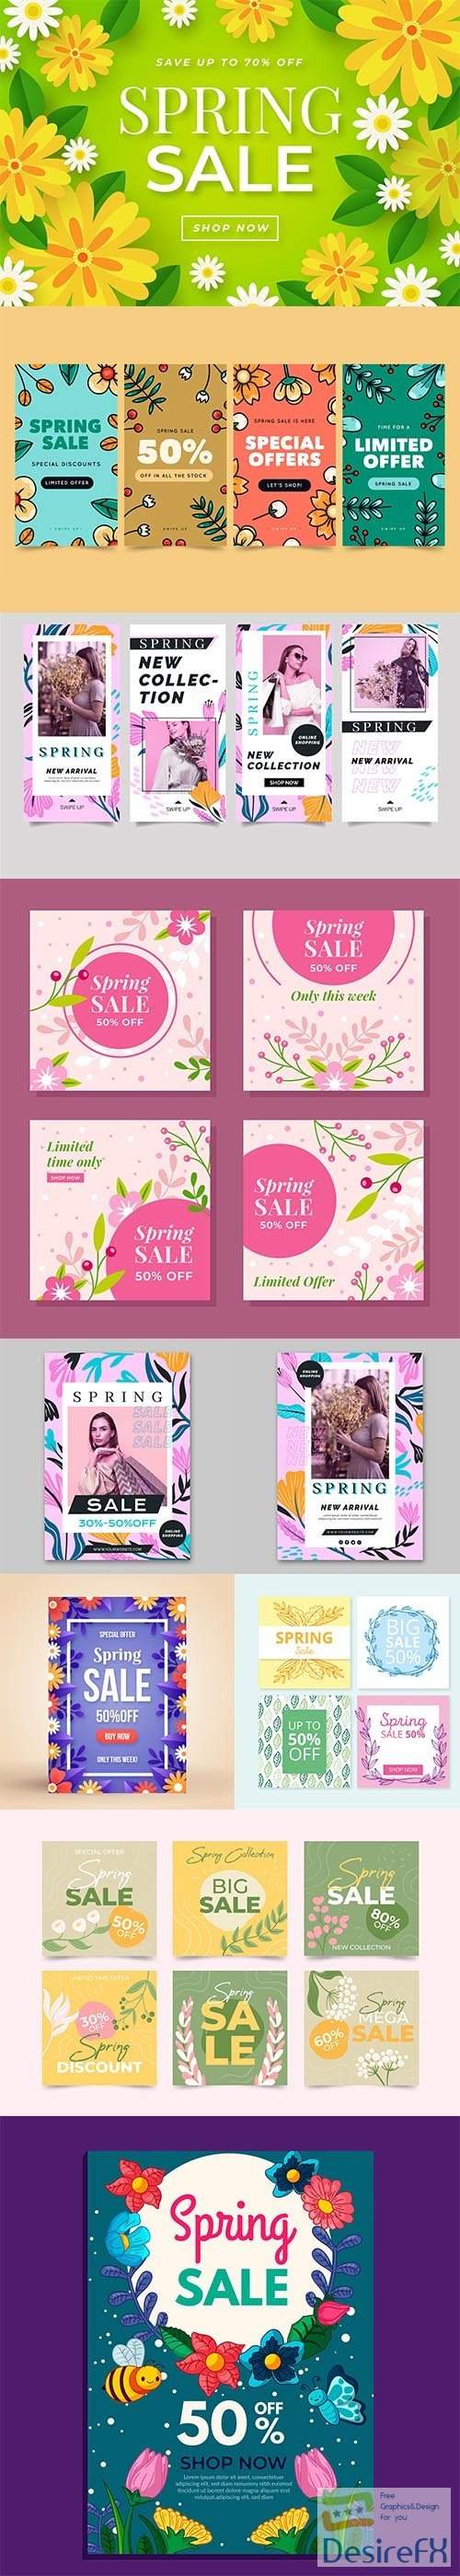 Hand-drawn Spring Sale Vector Collection vol 3